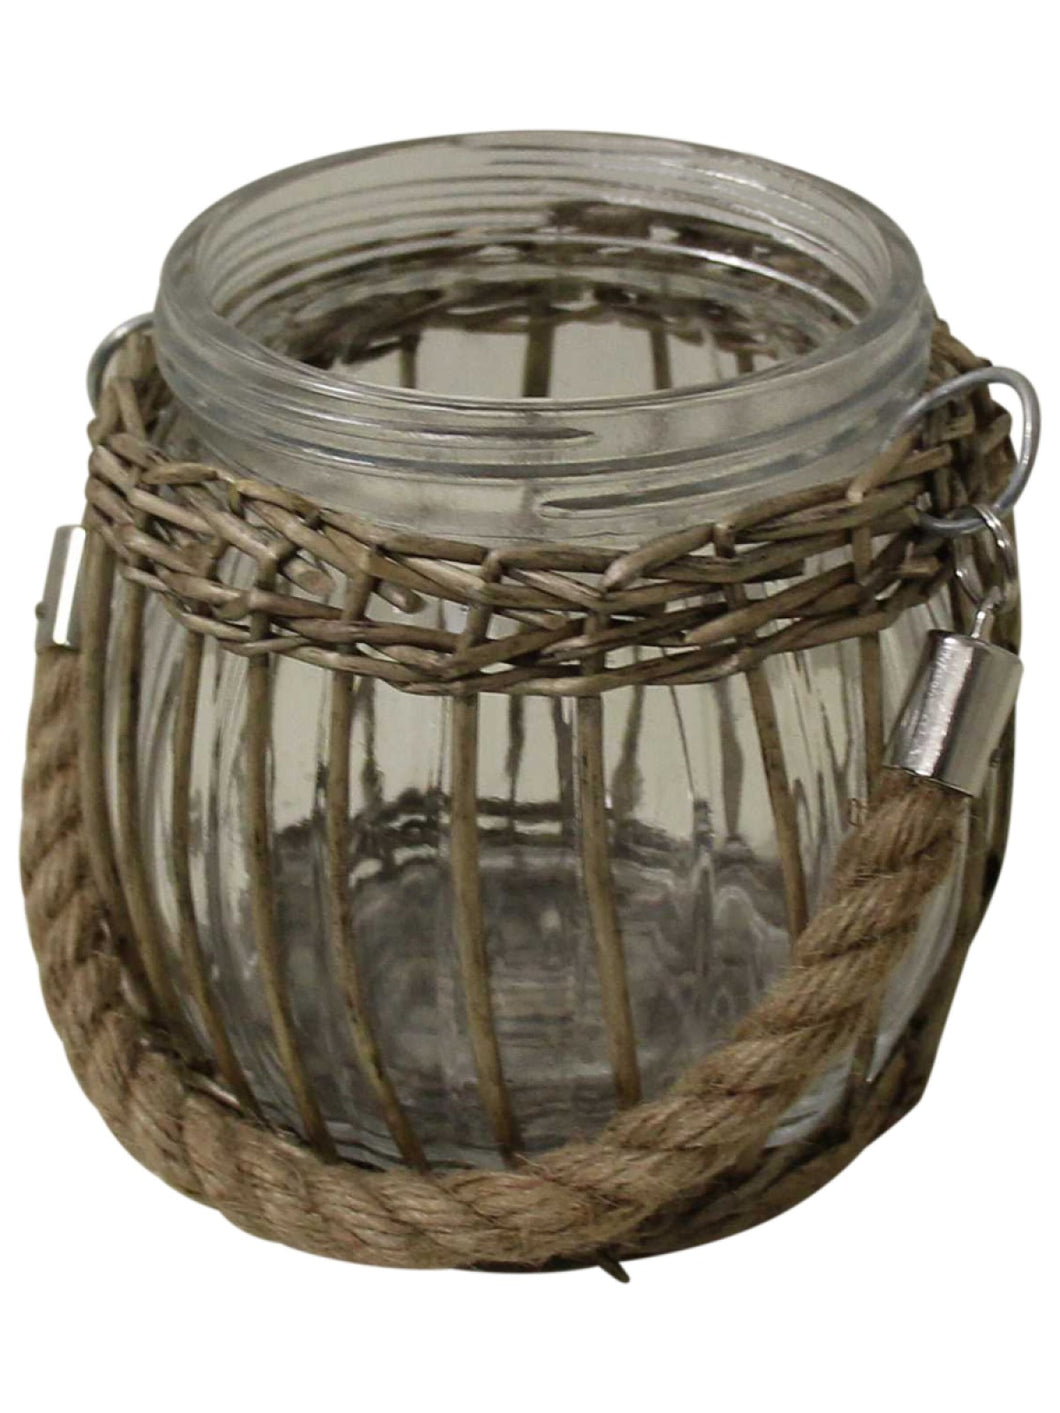 Basket Weave Lantern/Candle Holder